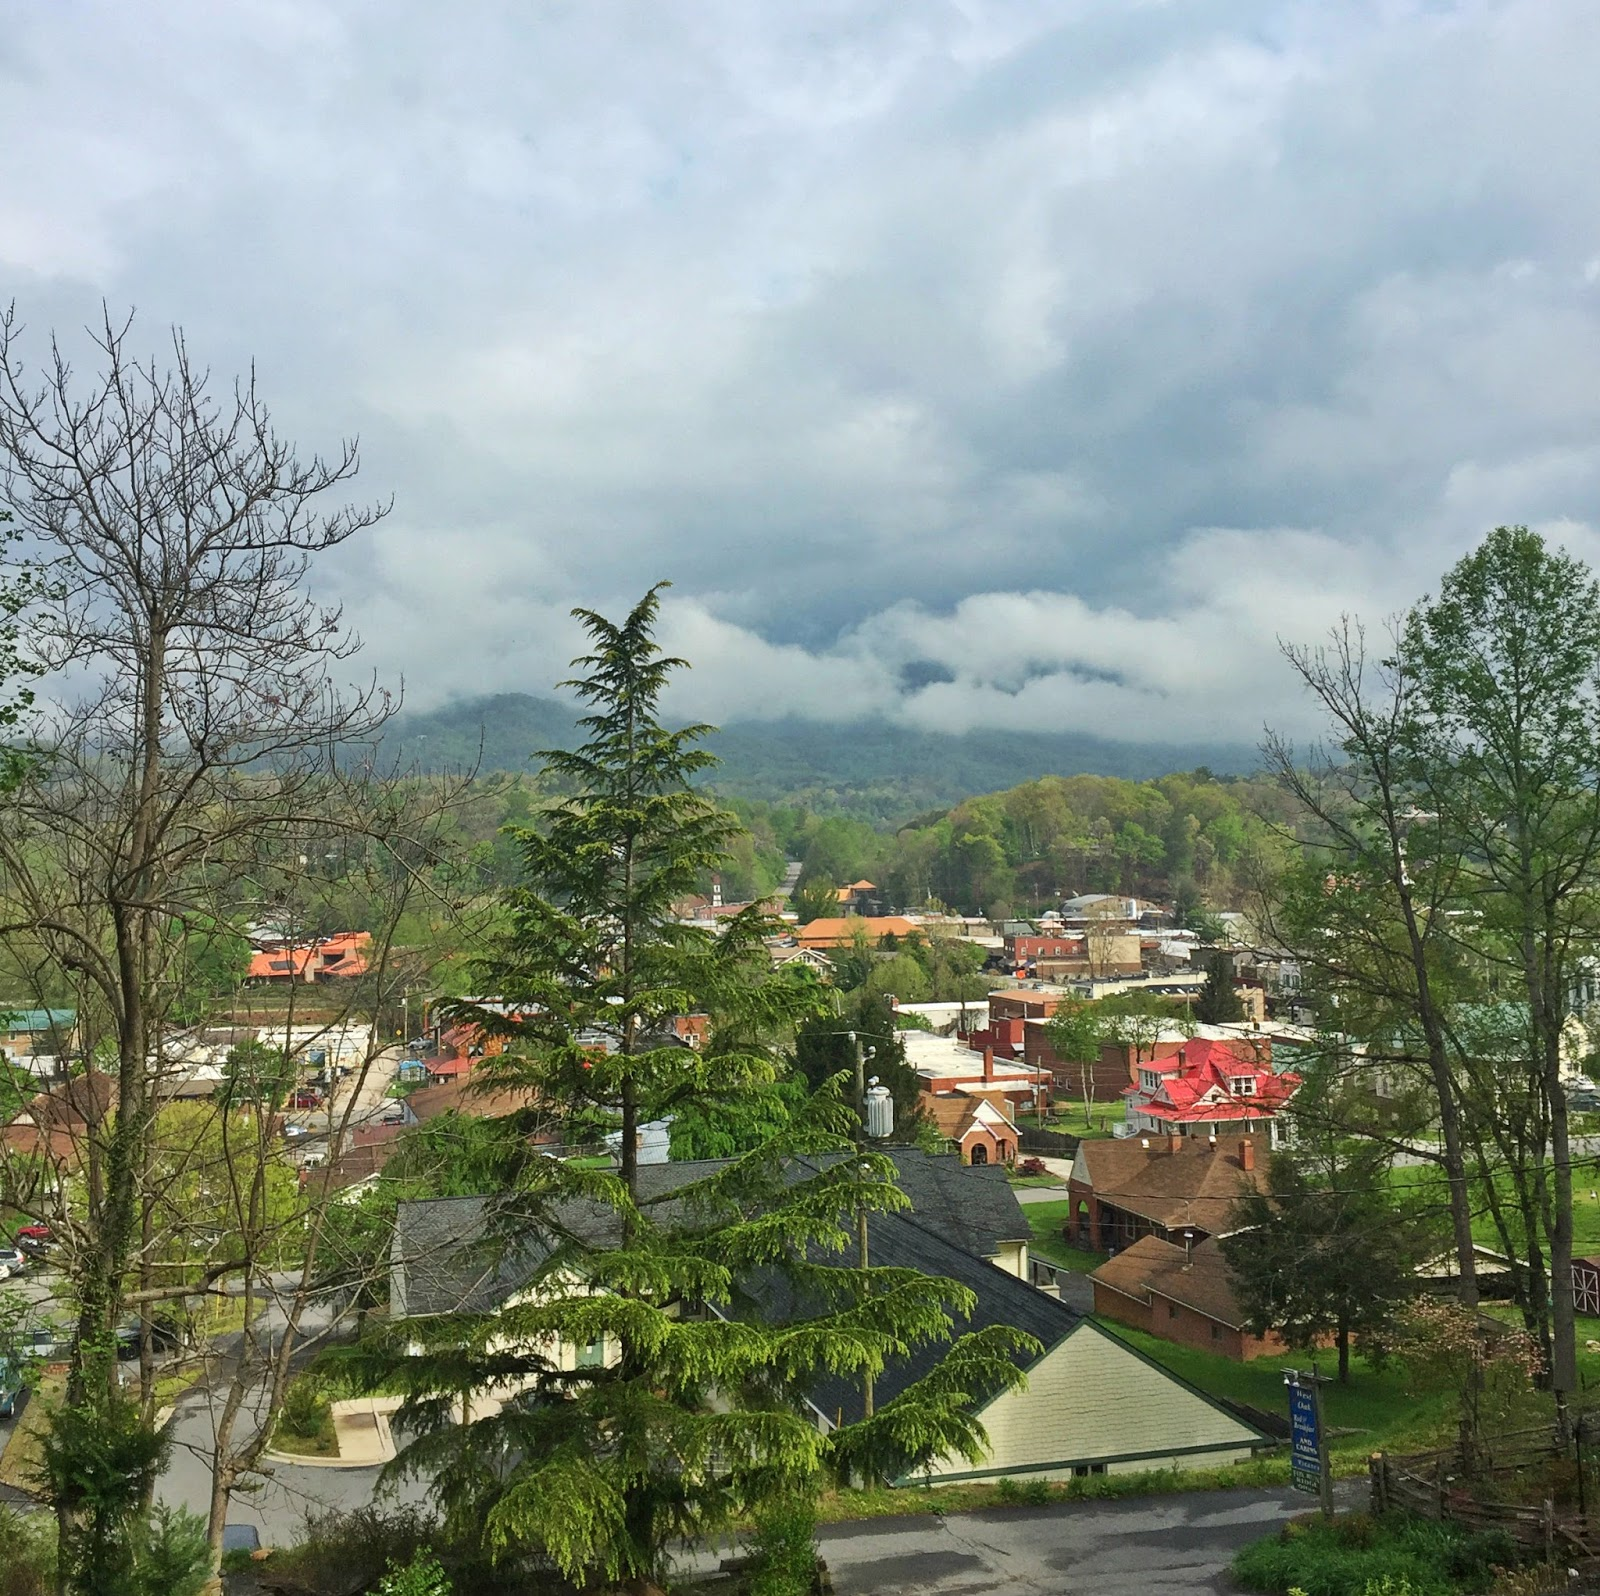 View from the deck over Bryson City